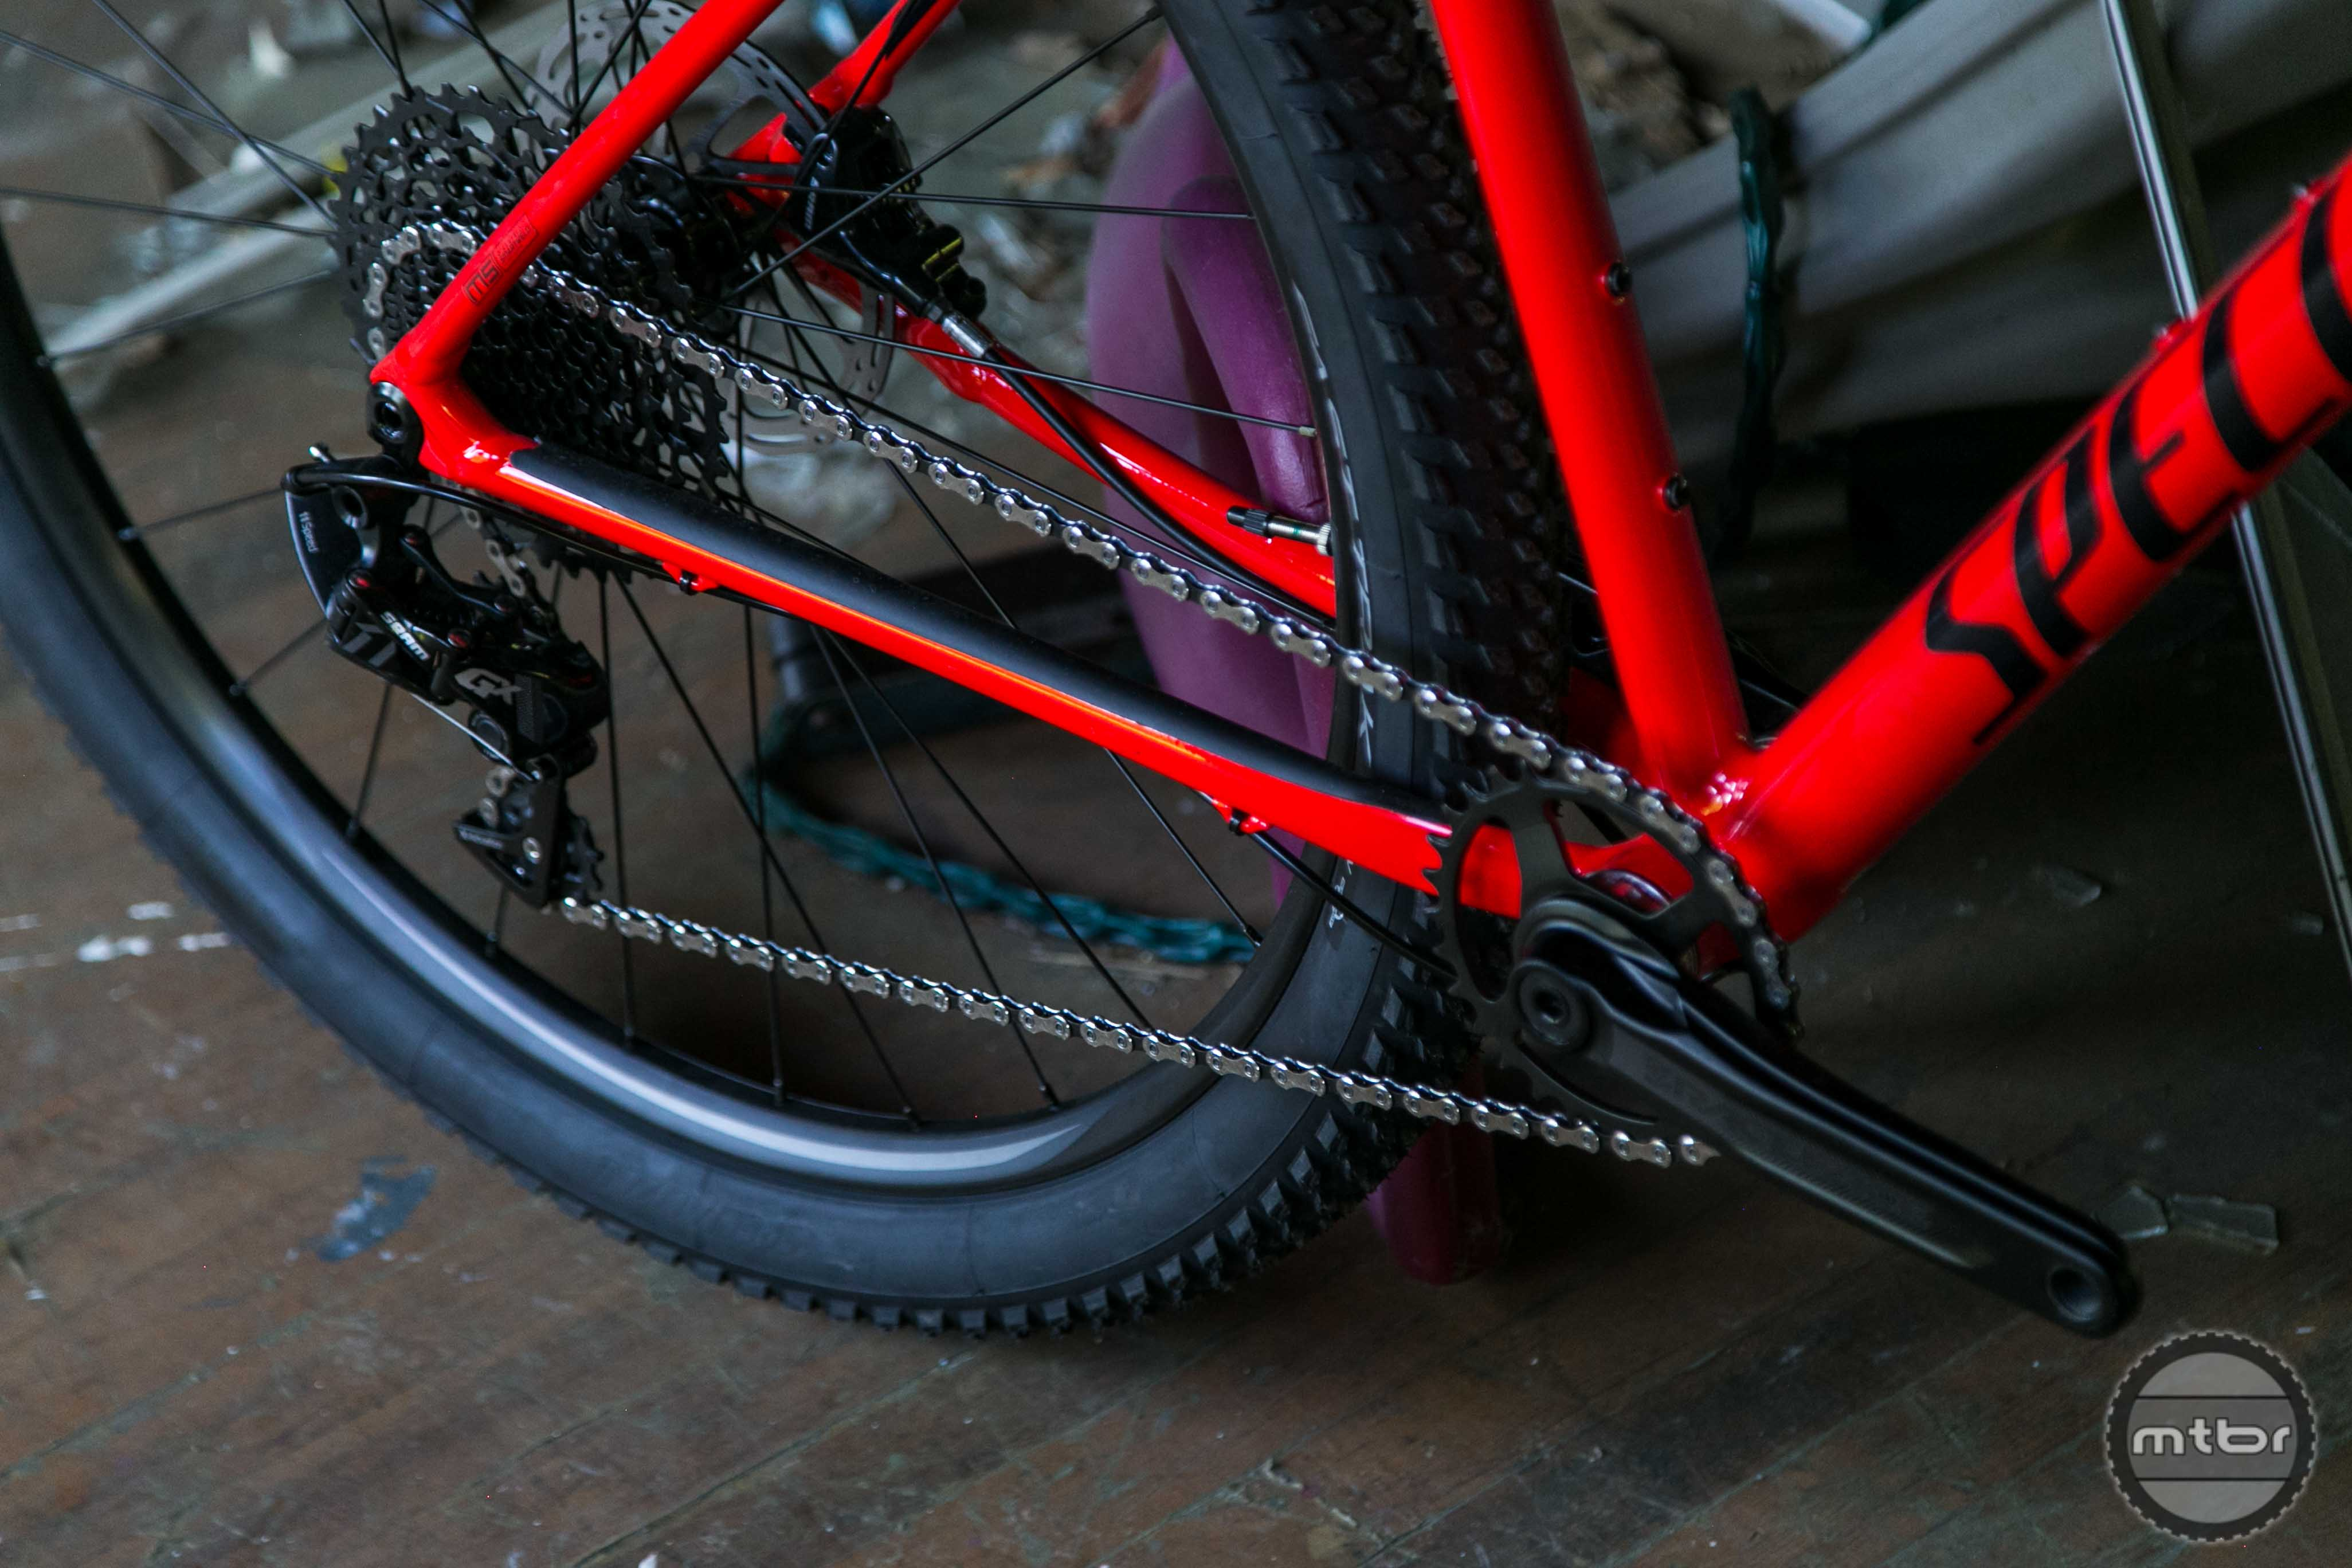 Unlike the Epic FSR, Specialized still offers the option of a 2x drivetrain on the Chisel.